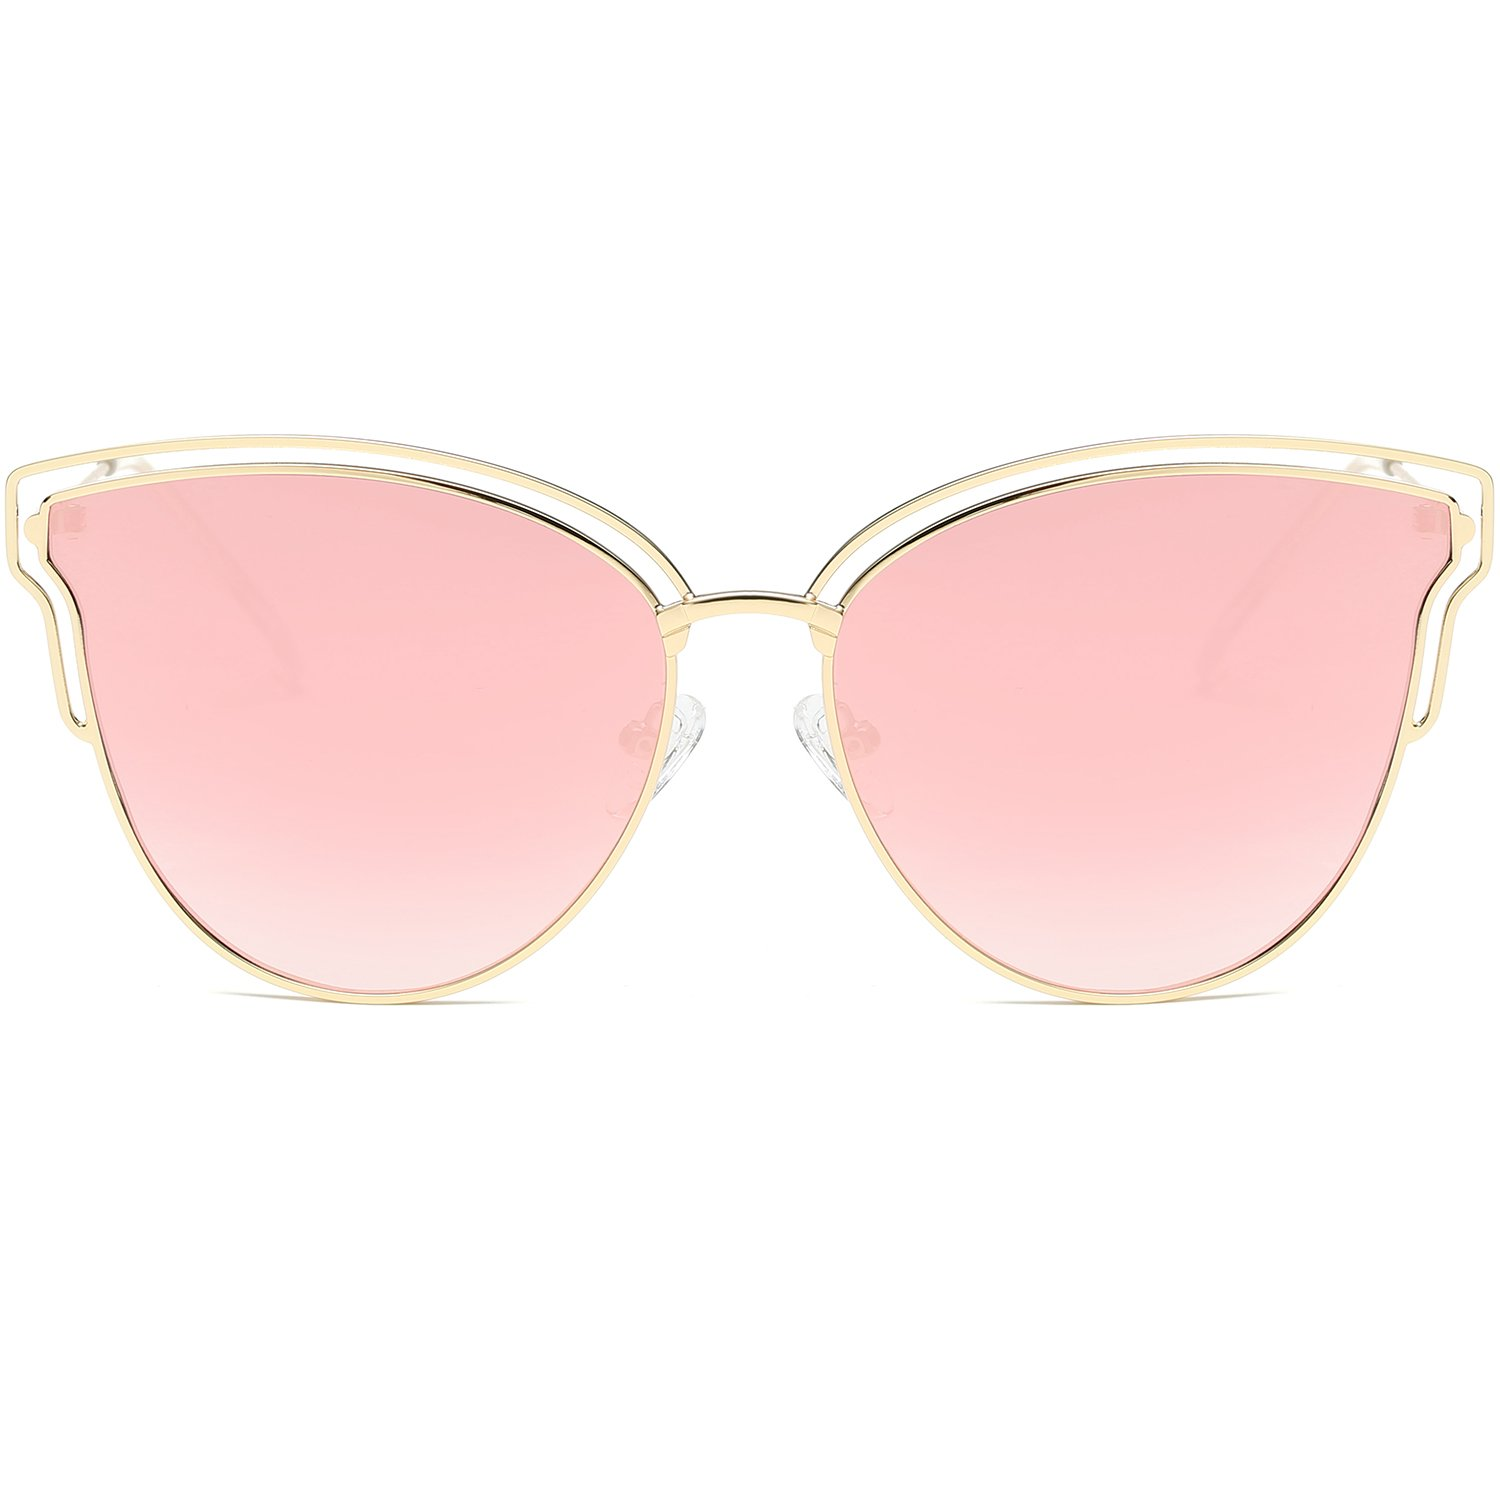 SOJOS Womens Fashion Double Wire Flash Mirrored Lens Cateye Sunglasses SJ1049 with Gold Frame/Pink Mirrored Lens by SOJOS